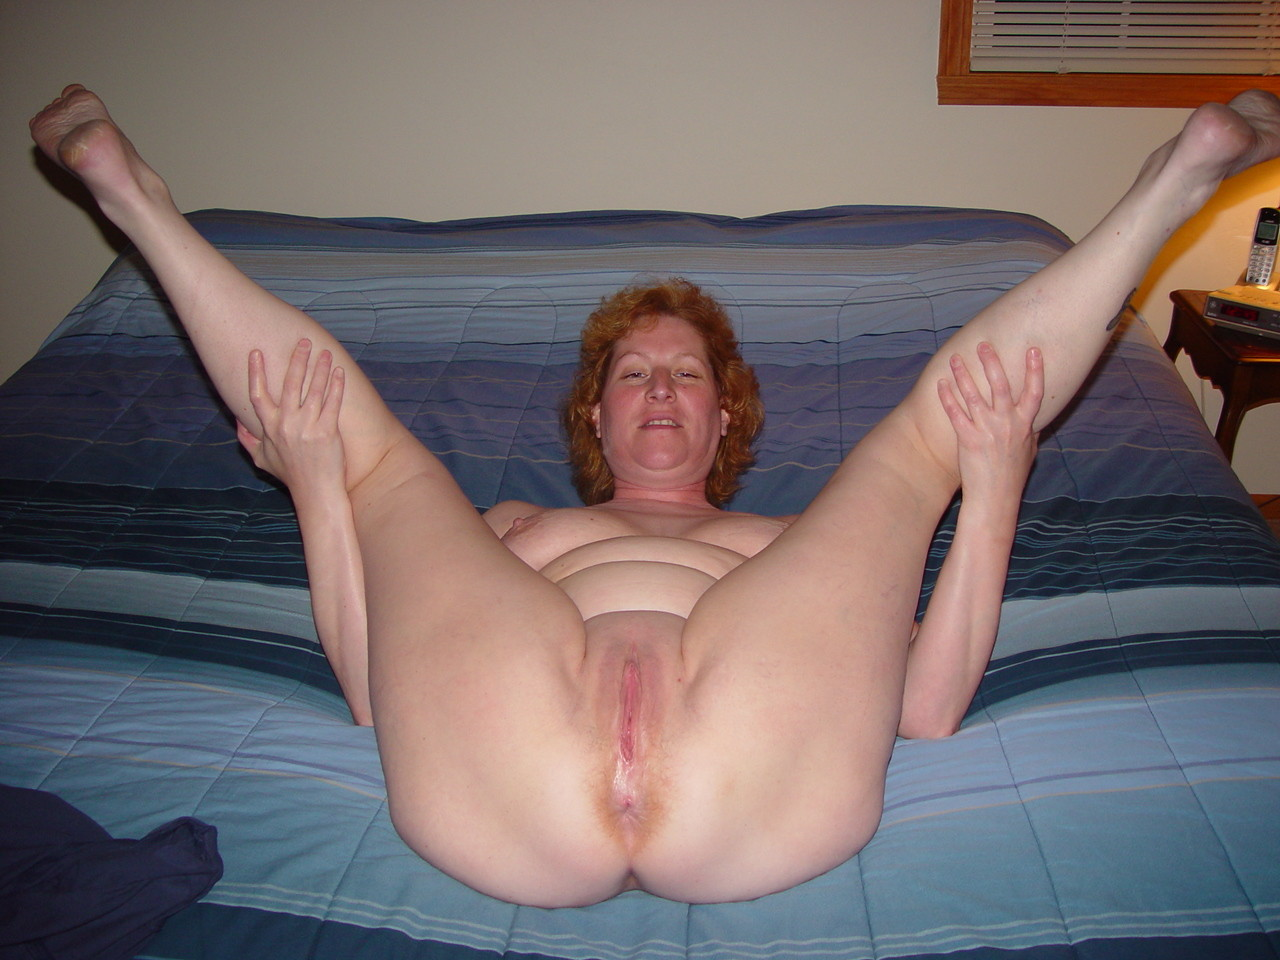 She smiles wide as a cock enters her ass